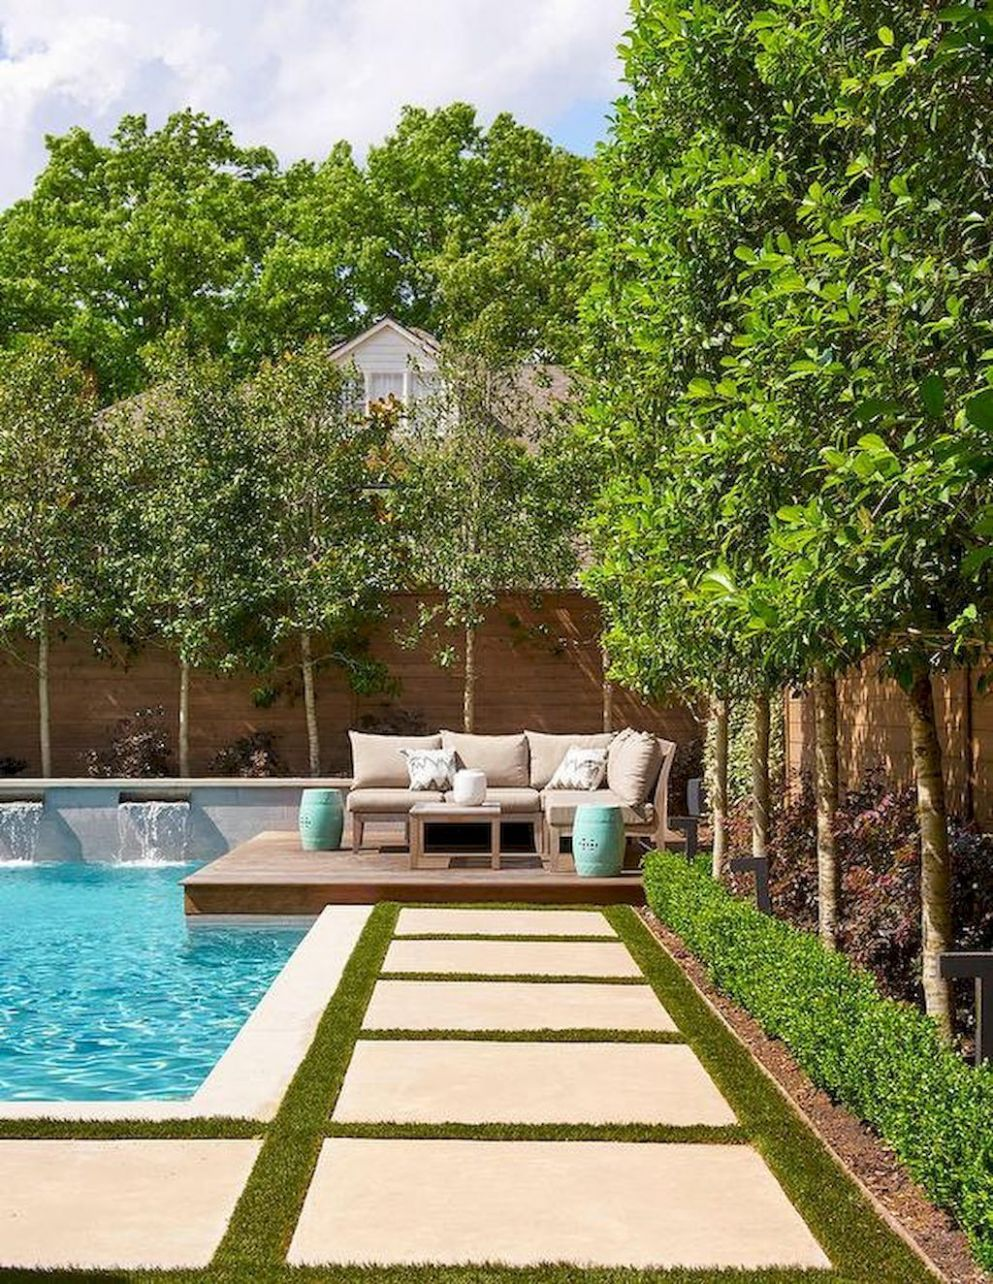 12 Creative DIY Backyard Privacy Ideas On A Budget | Backyard pool ...